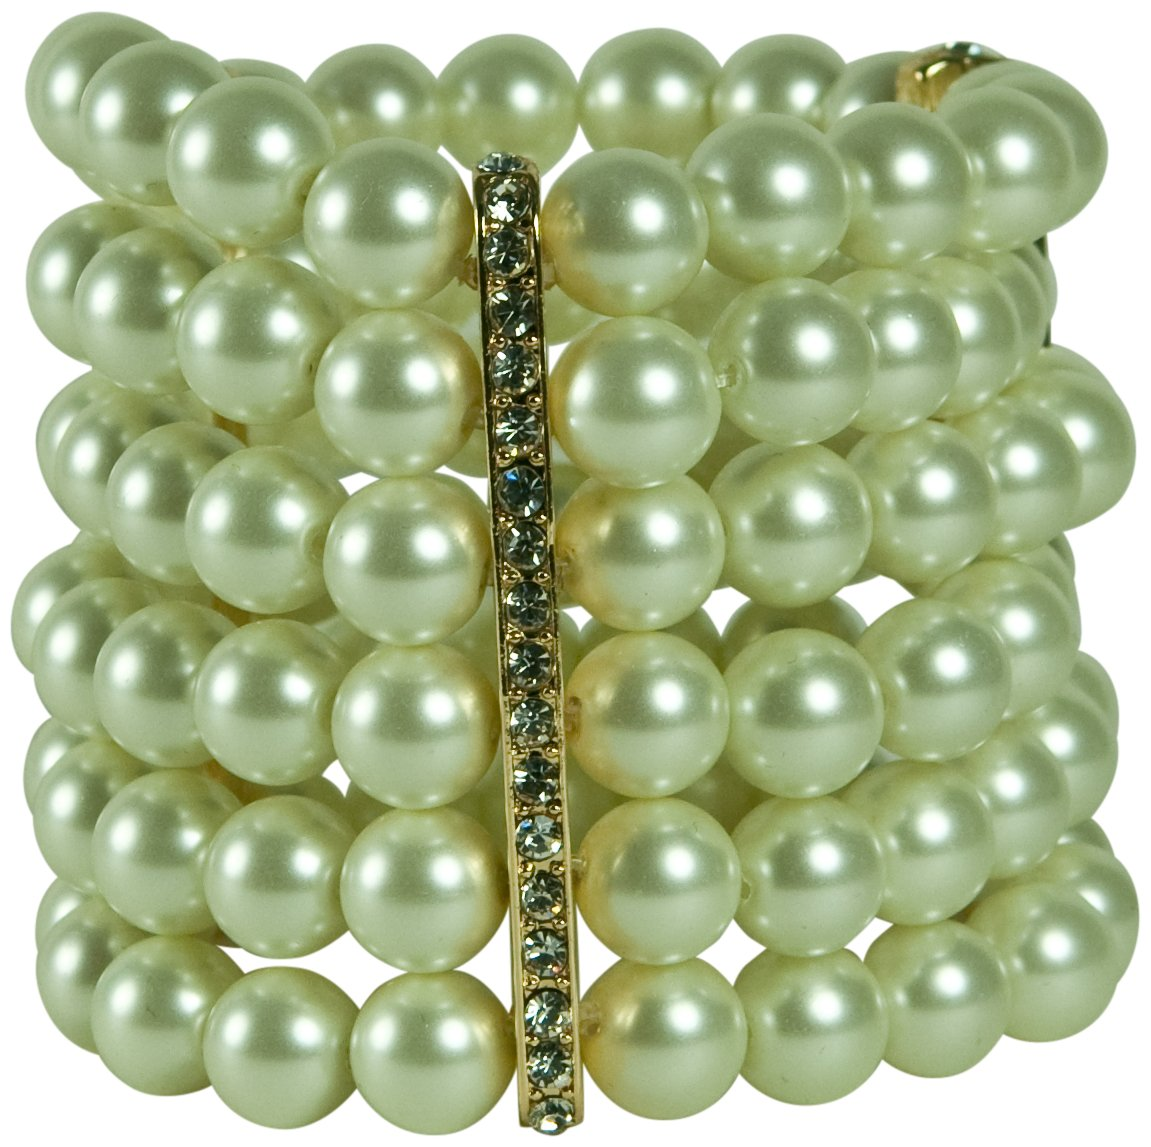 KENNETH JAY LANE-6 ROW GLASS PEARL STRETCH BRACELET WITH 3 CRYSTAL BAR STATIONS by Kenneth Jay Lane